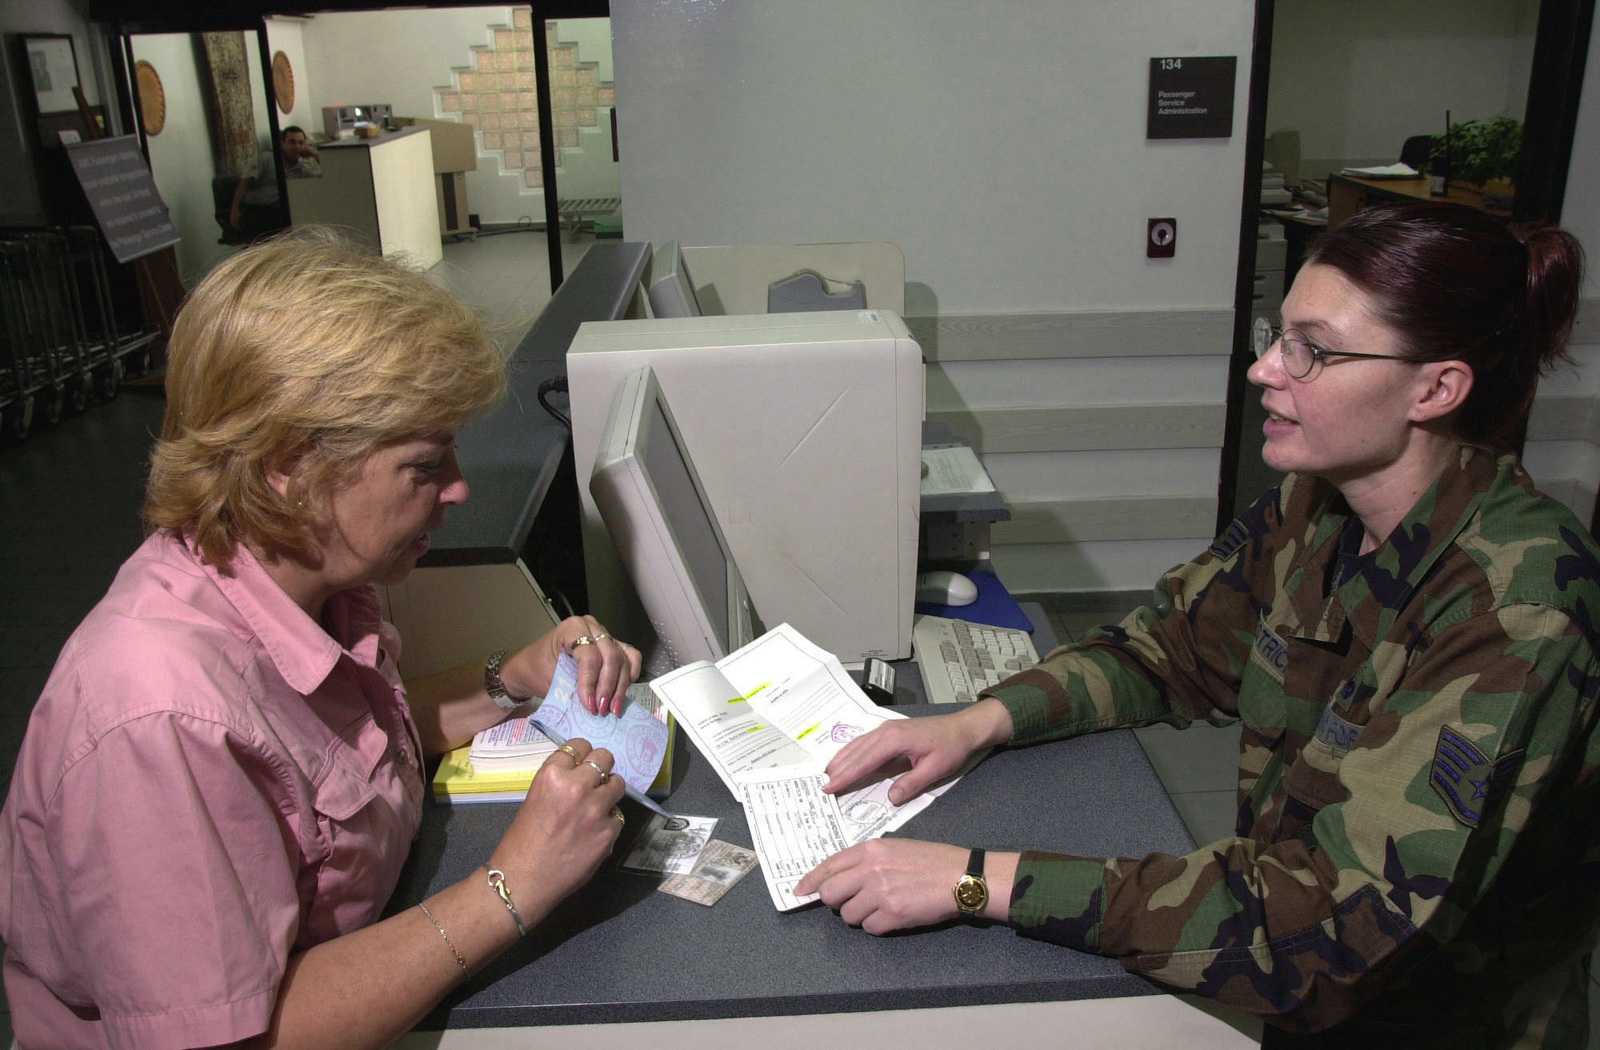 Mrs. Theresa Sorenson (left) gets assistance from US Air Force (USAF) STAFF Sergeant (SSGT) Veronica Westrich, 728th Air Mobility Squadron (AMS) Passenger Service Supervisor, as she makes arrangements for airline tickets, inside the terminal at Incirlik Air Base (AB), Turkey